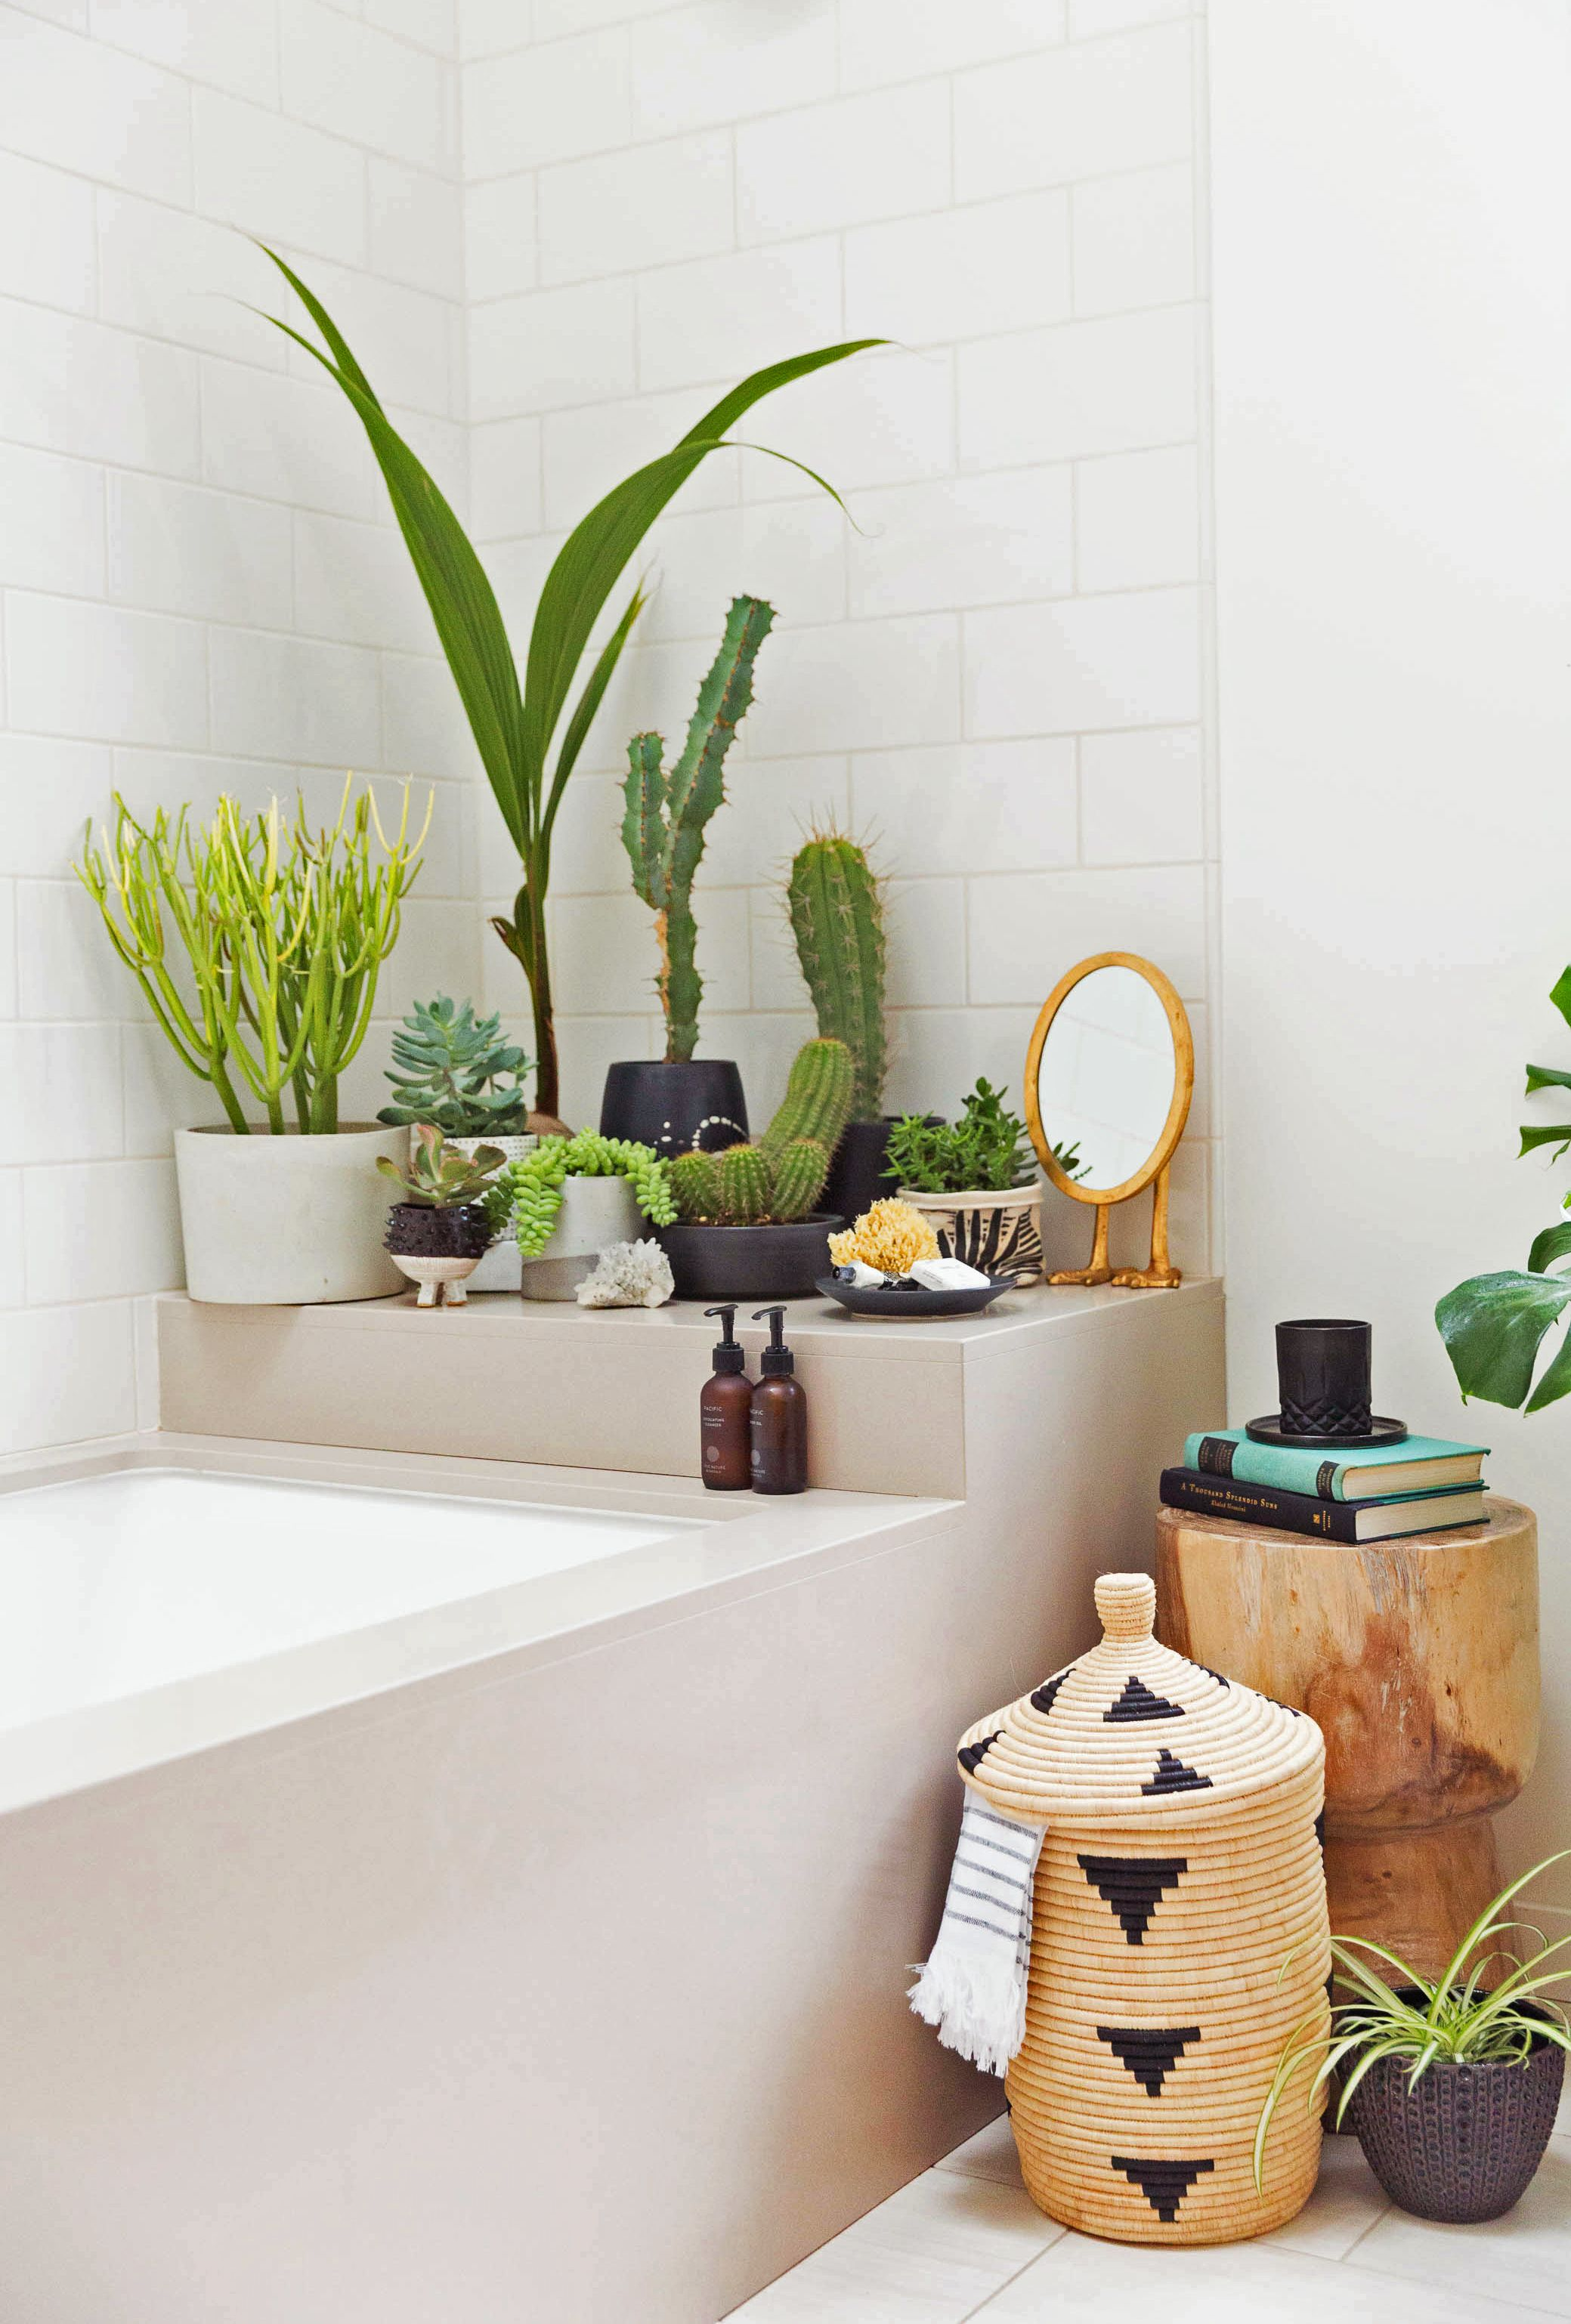 Find Out Now, What Should You Do For Your Bathroom Decor 7 bathroom decor Find Out Now, What Should You Do For Your Bathroom Decor Find Out Now What Should You Do For Your Bathroom Decor 7